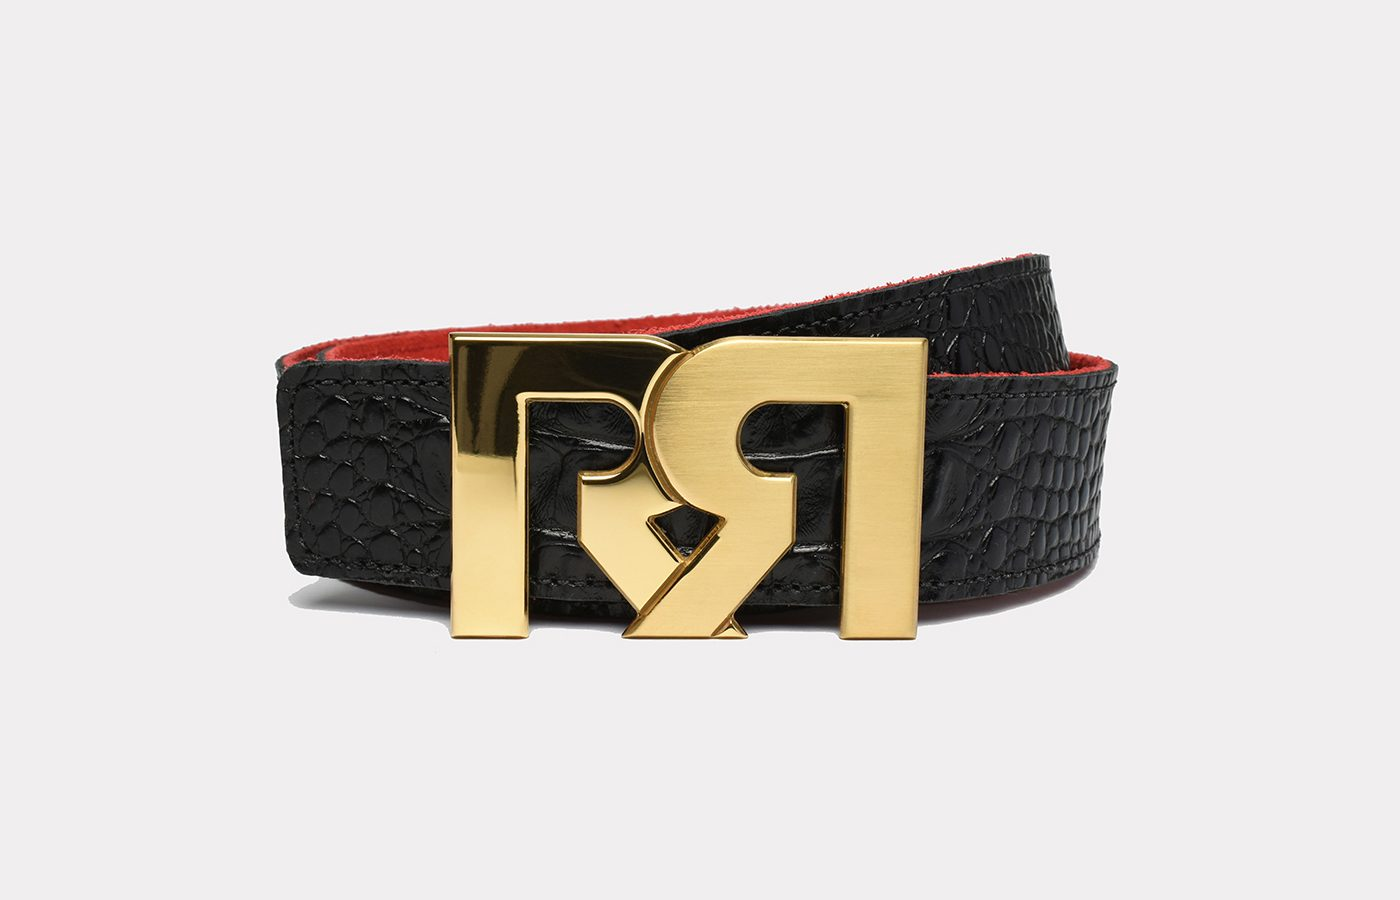 RR Designer belts two-tone 24k Gold plated with Croc Embossed Leather strap